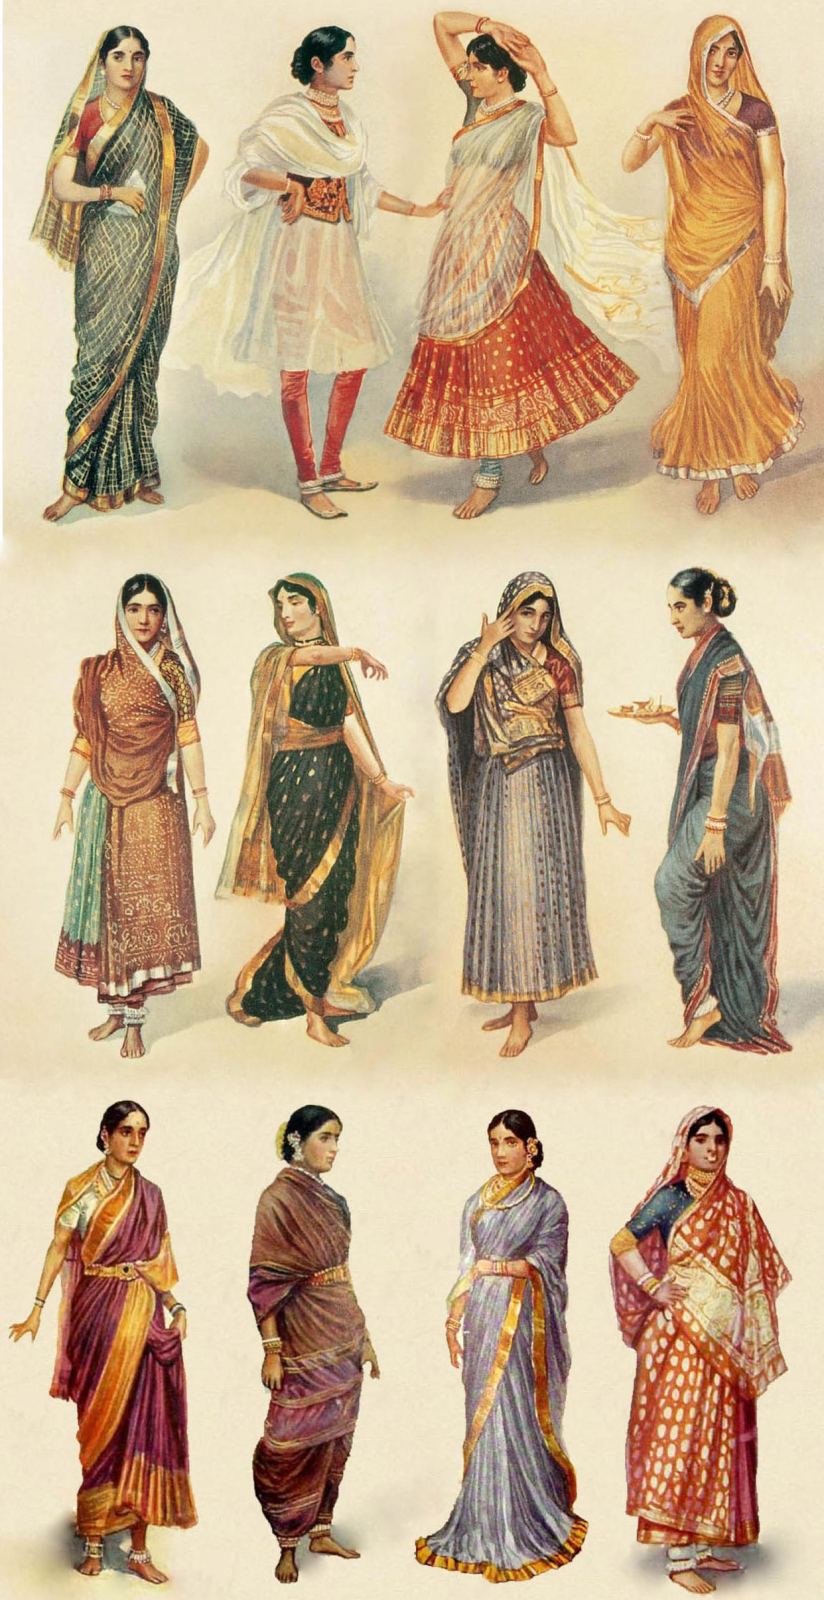 Illustration of different styles of sari clothing worn by women in